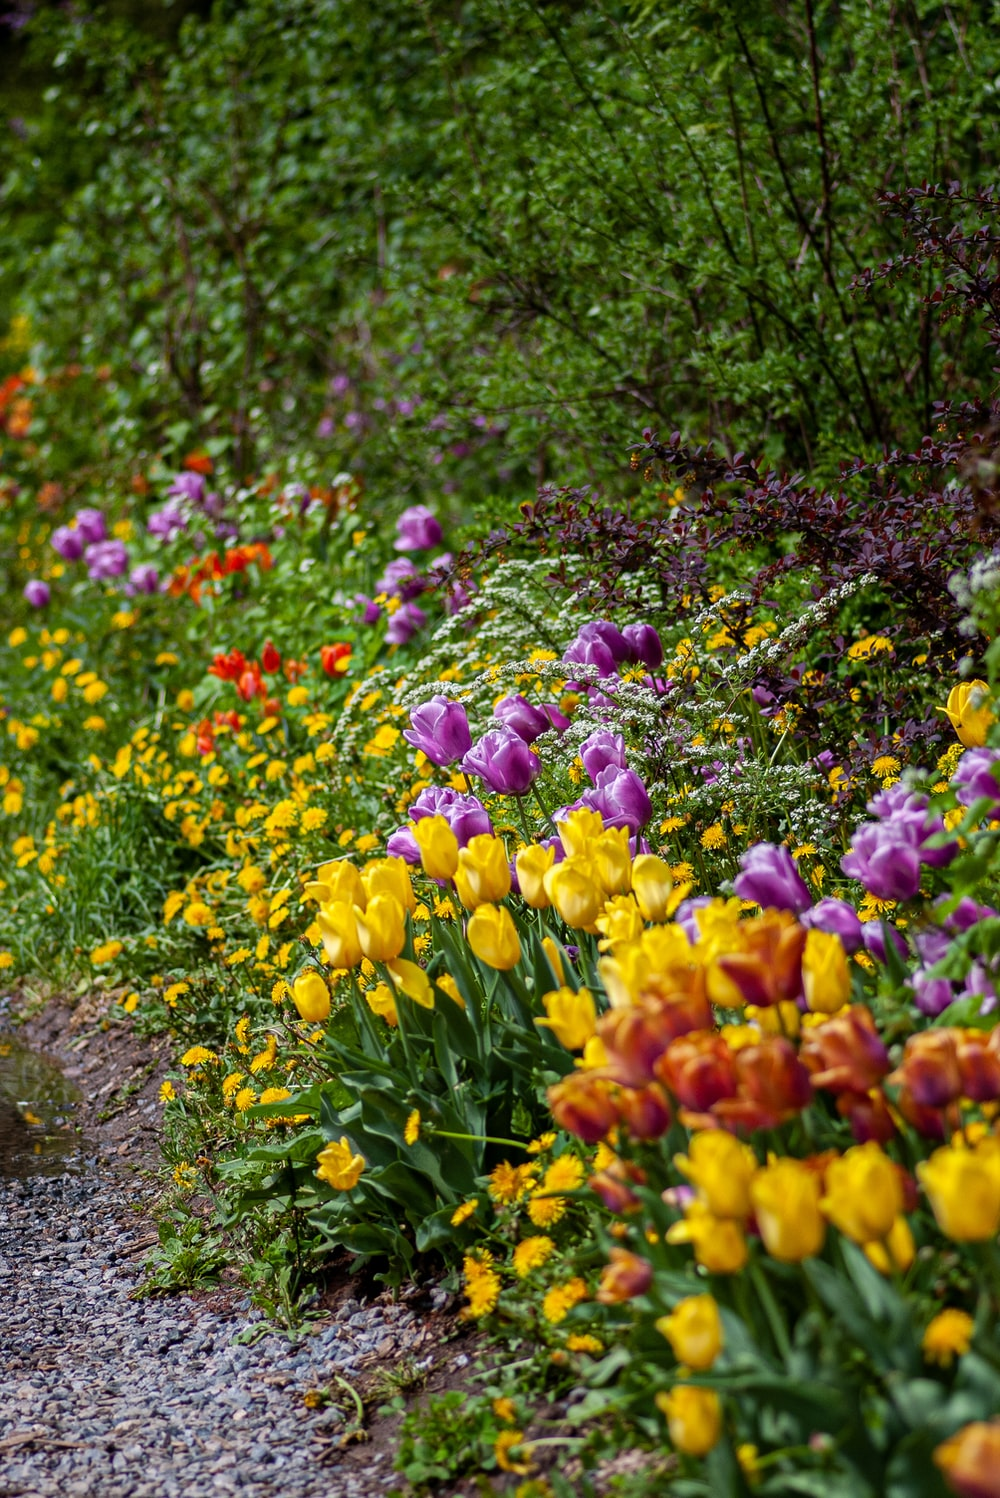 yellow, red, and purple tulip flowers